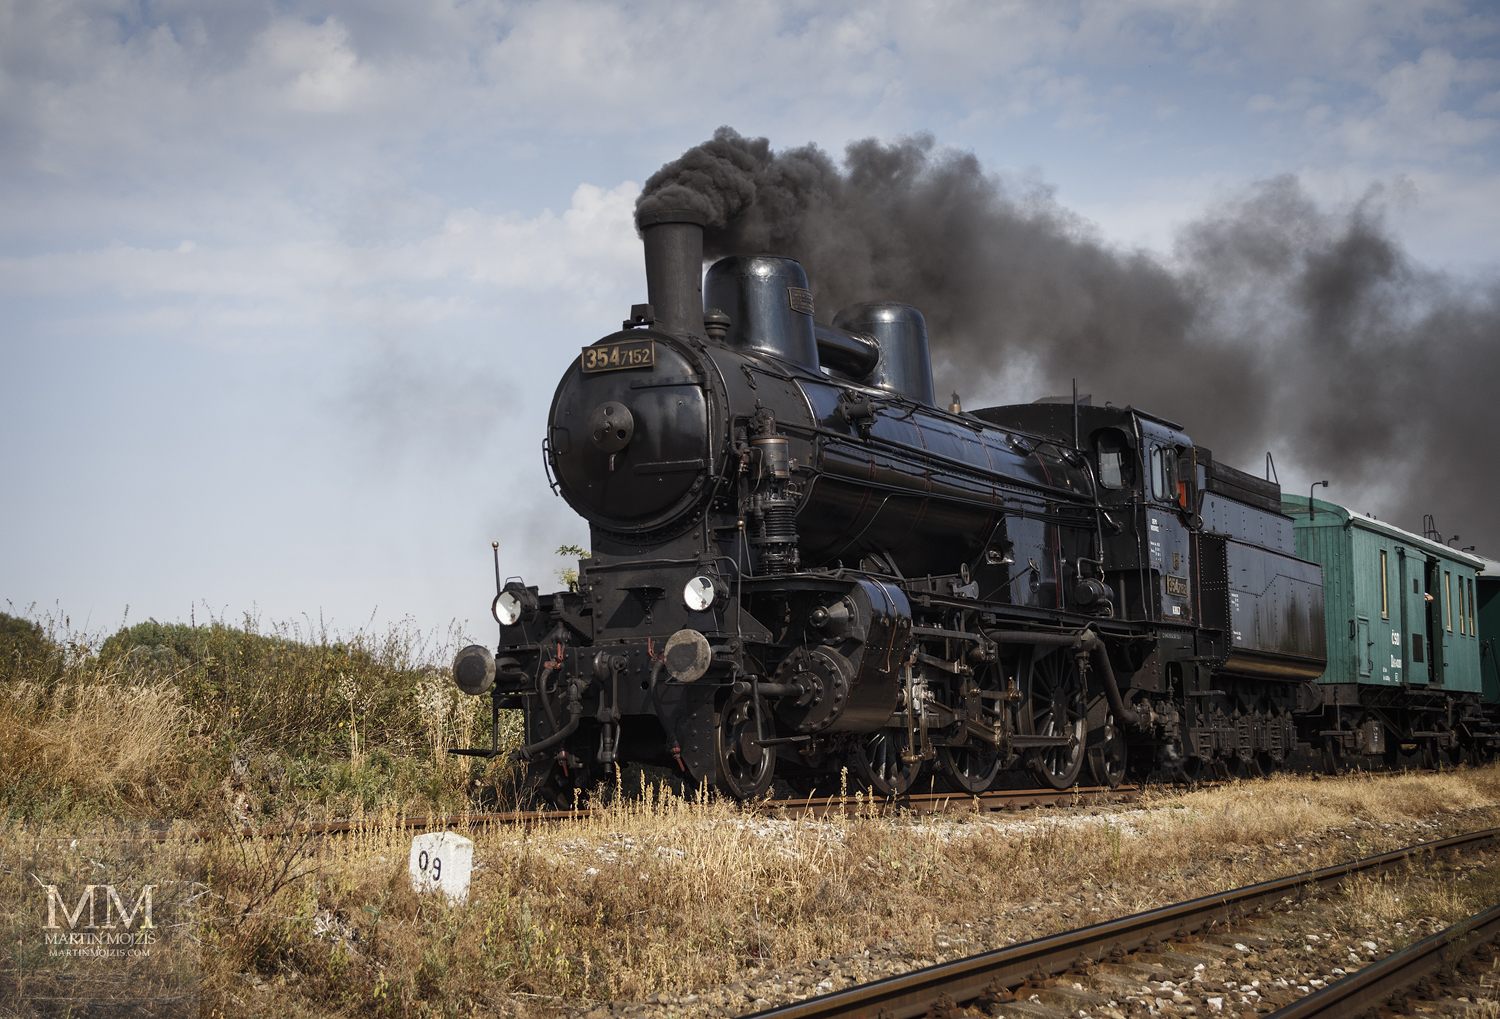 Large format, fine art photograph of steam locomotive. Martin Mojzis.